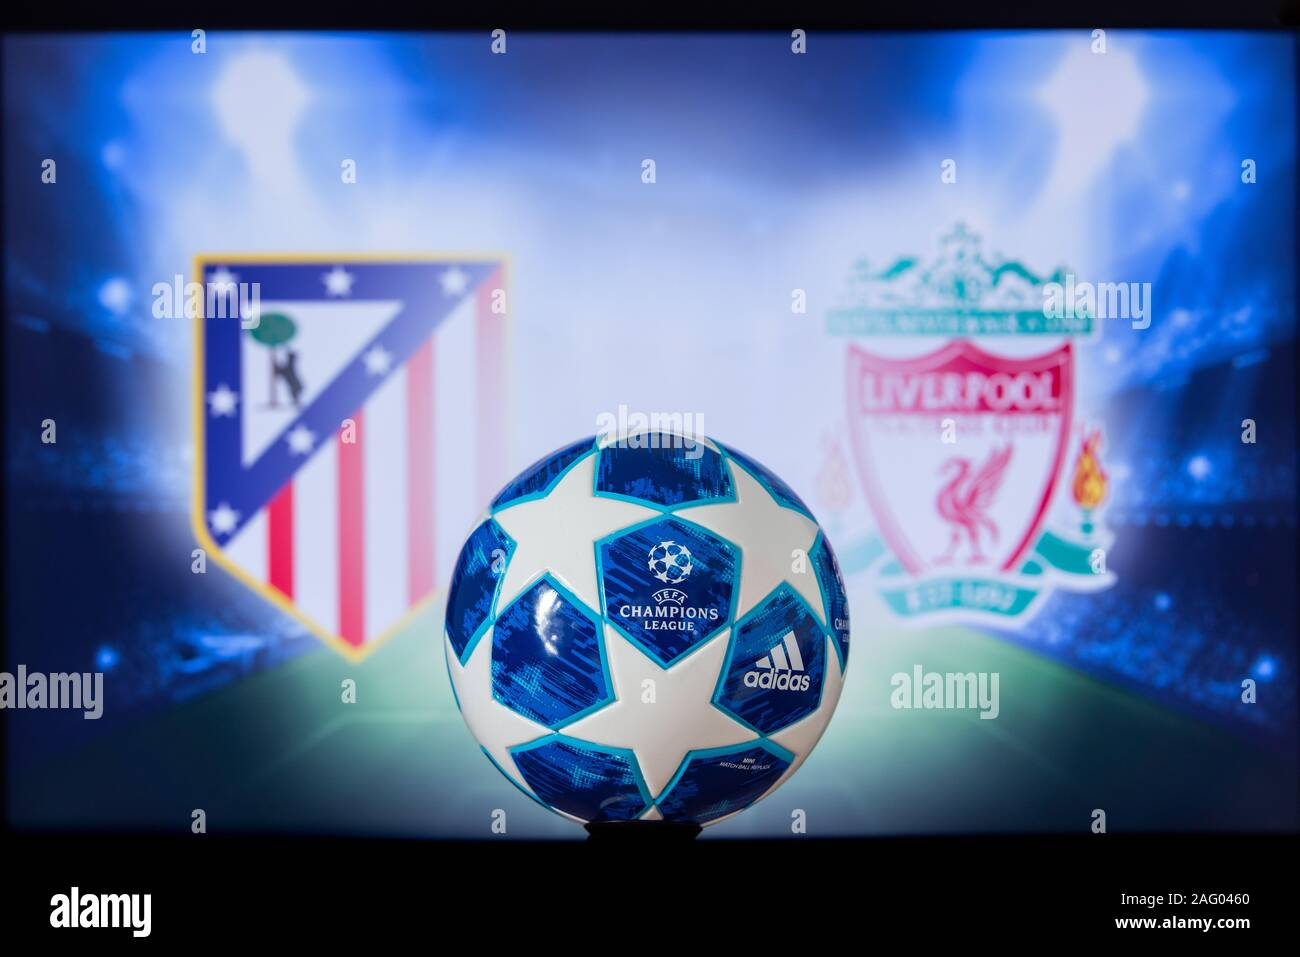 uefa champions league 2020 round of 16 ucl football knockout stage playoff official adidas soccer ball 2020 stock photo alamy https www alamy com uefa champions league 2020 round of 16 ucl football knockout stage playoff official adidas soccer ball 2020 image336834792 html